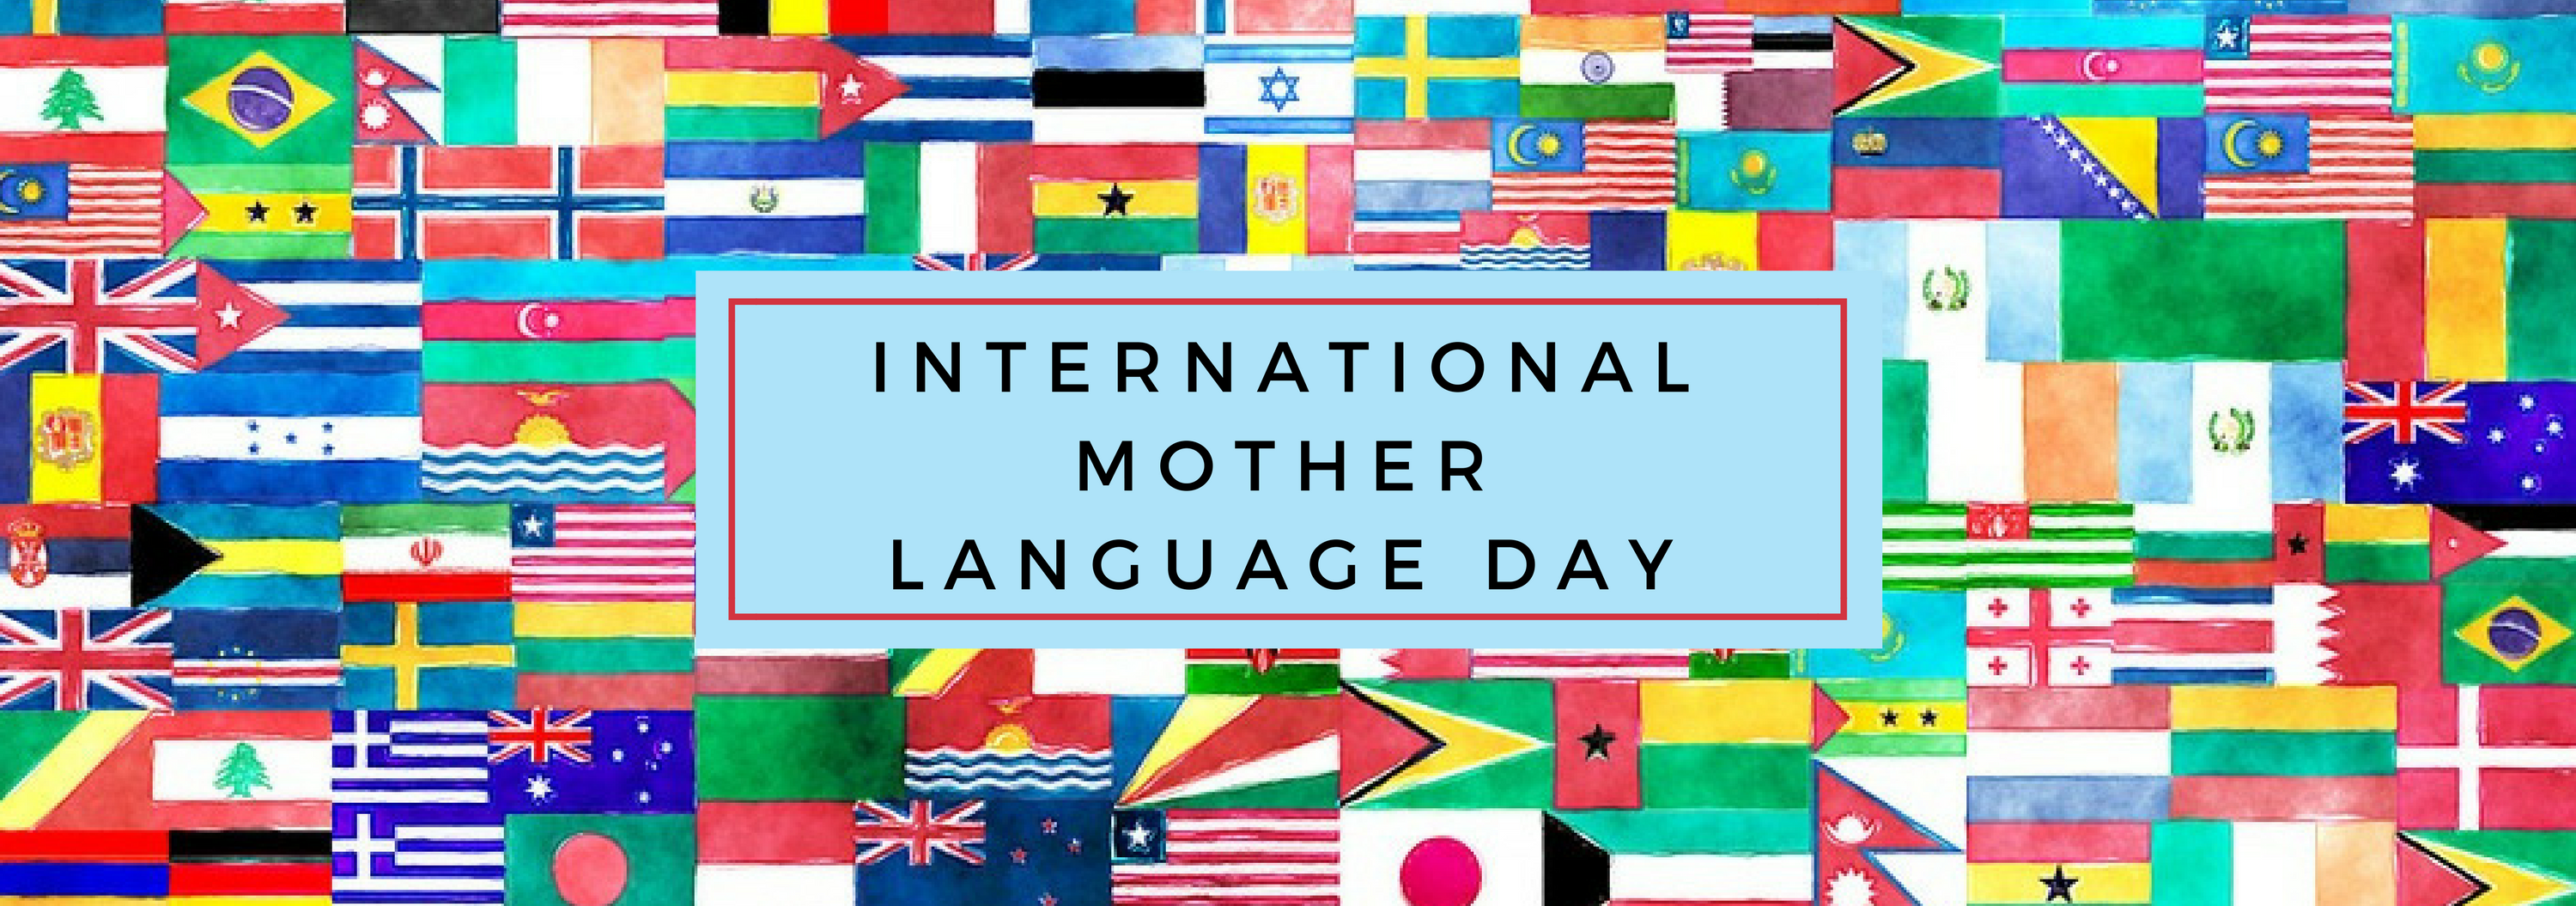 international mother language day blog header.png